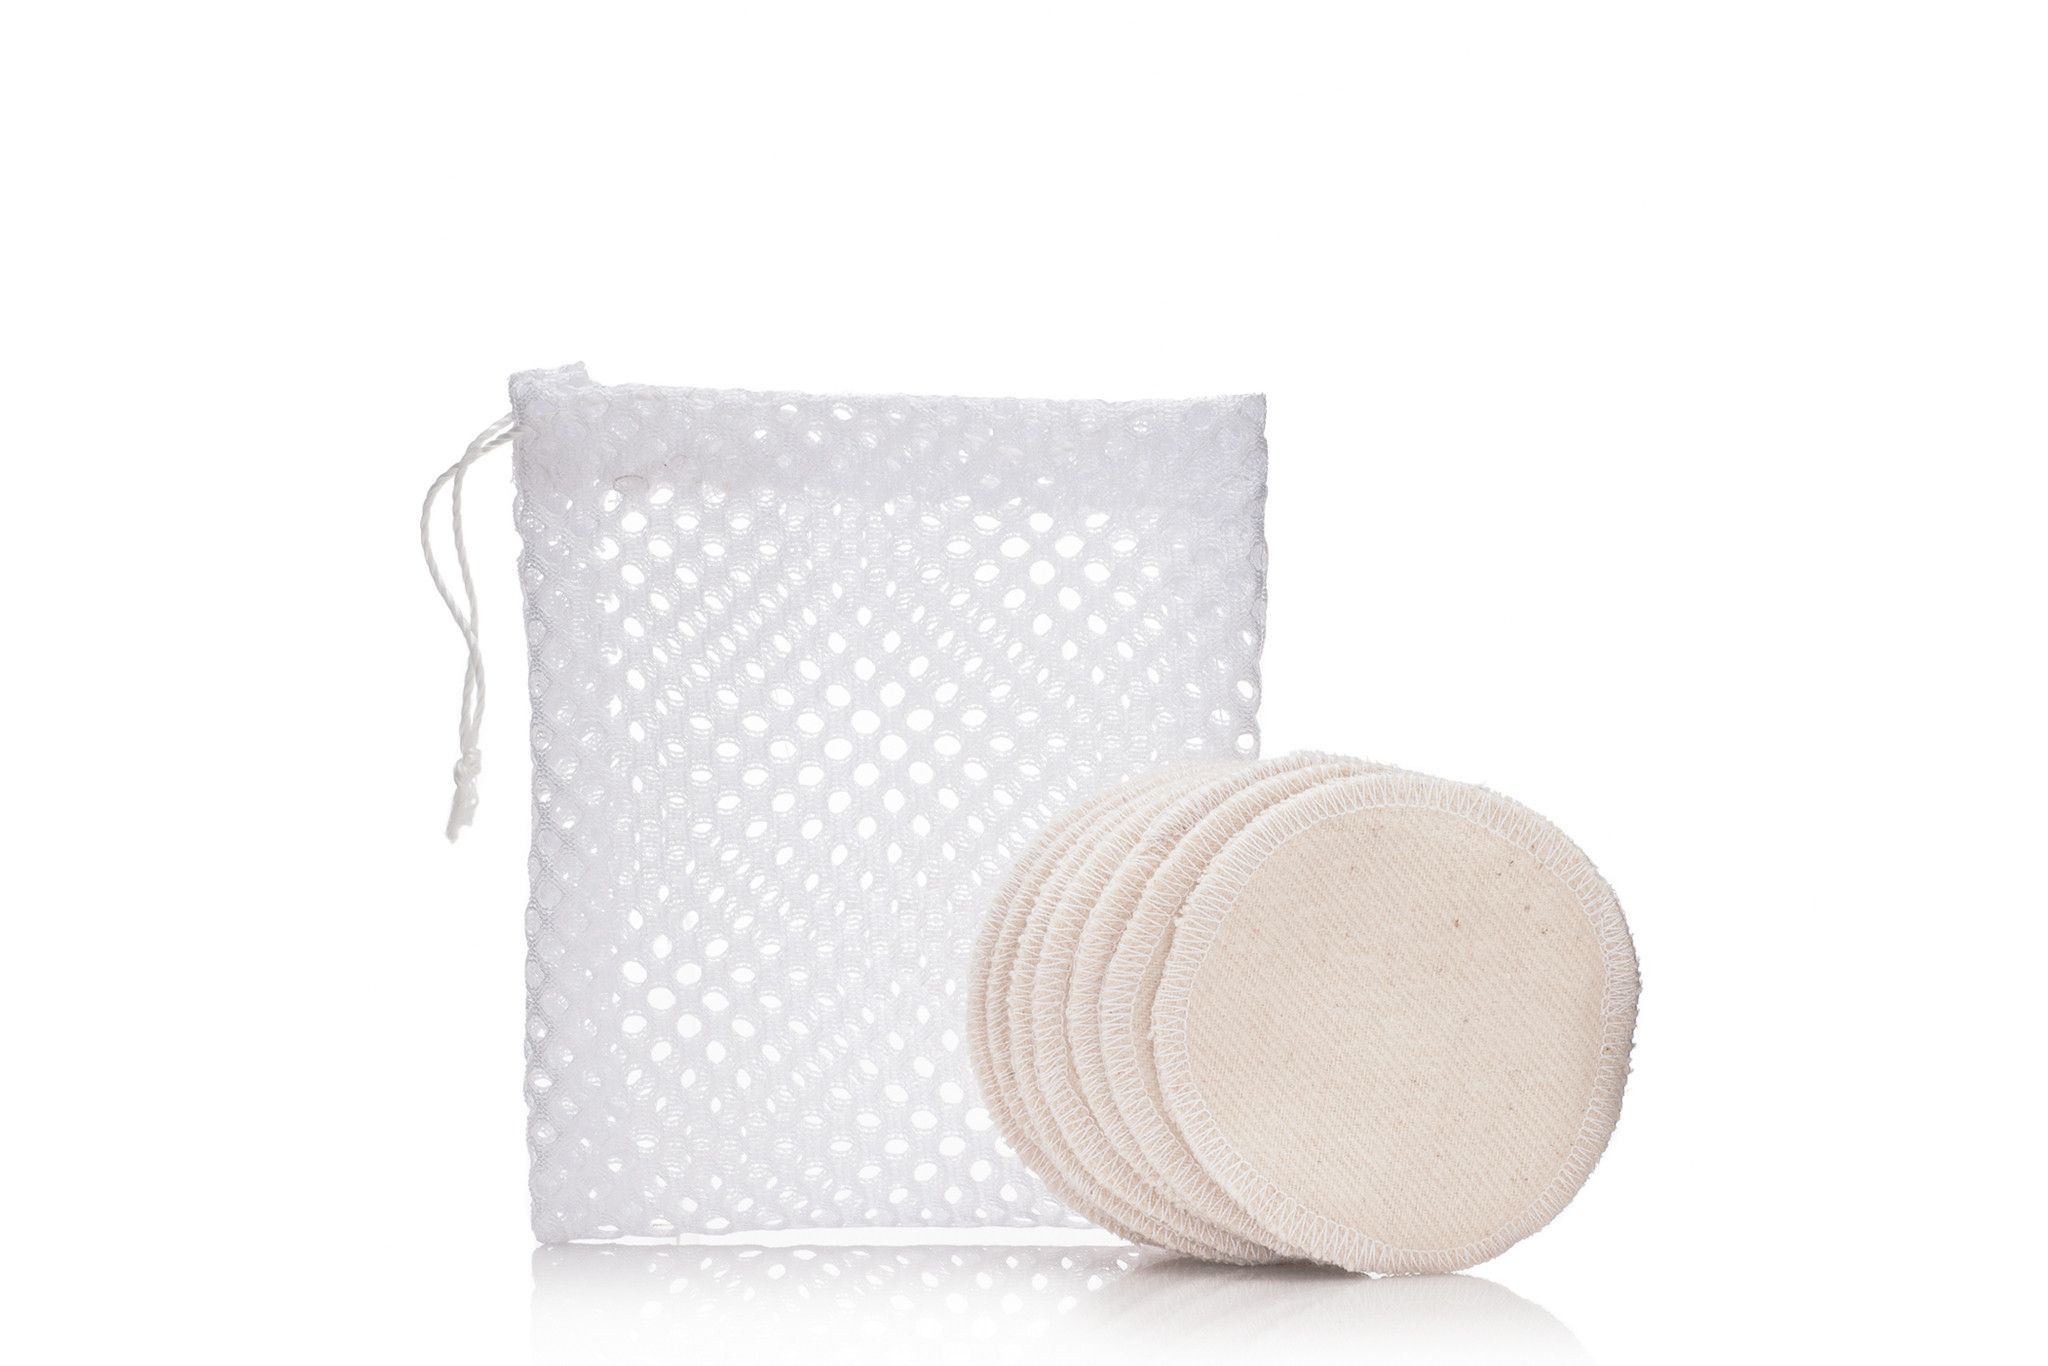 Eco Cotton Rounds Cotton pads which you can use for